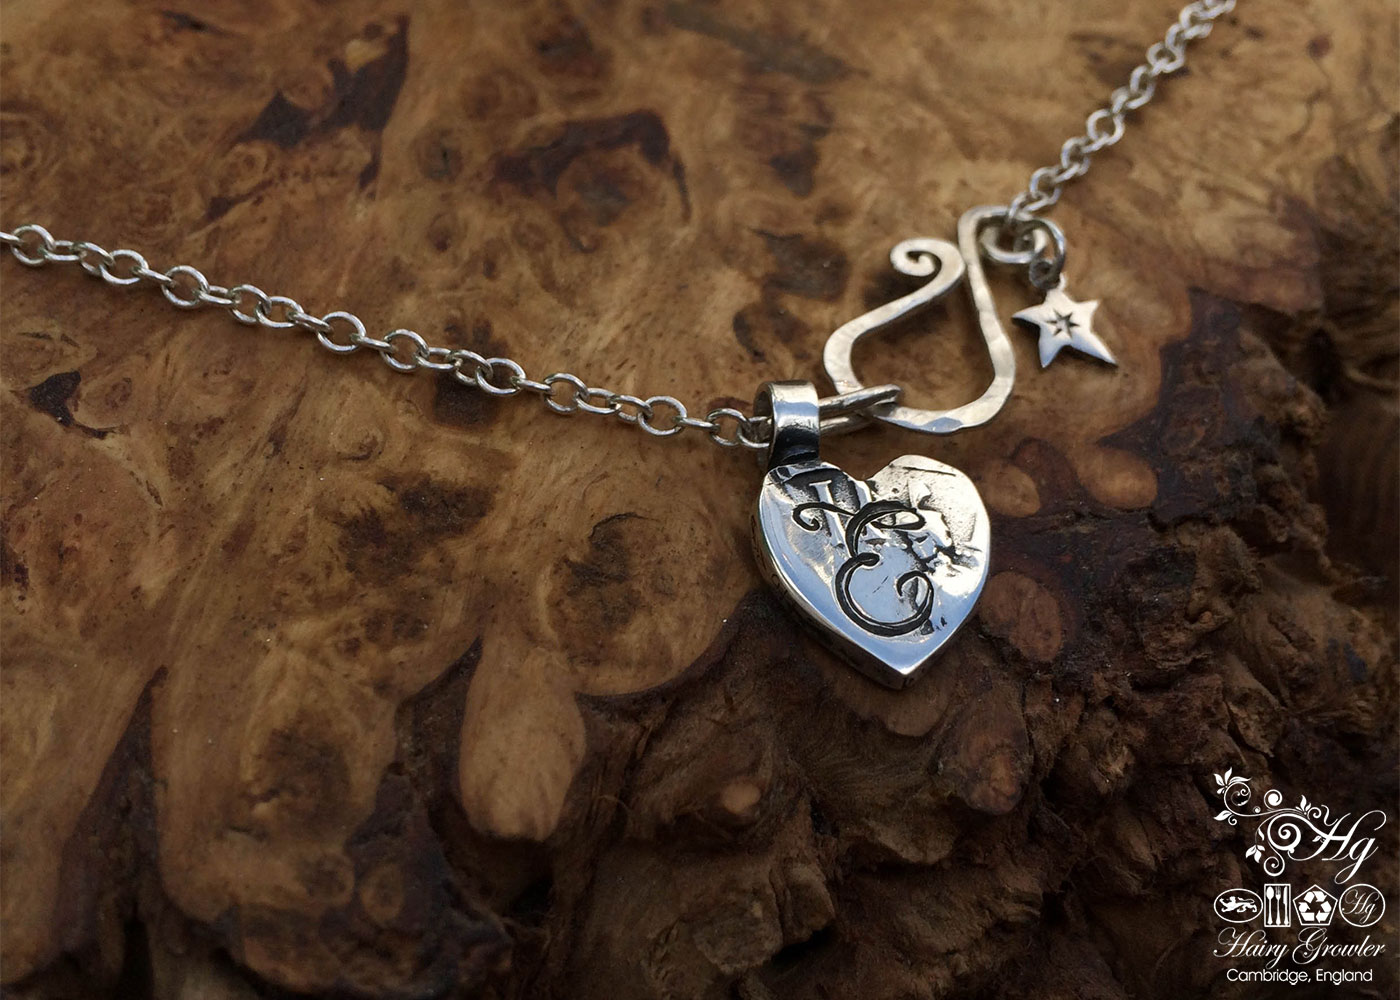 handmade silver heart charm for a tree sculpture, necklace or bracelet